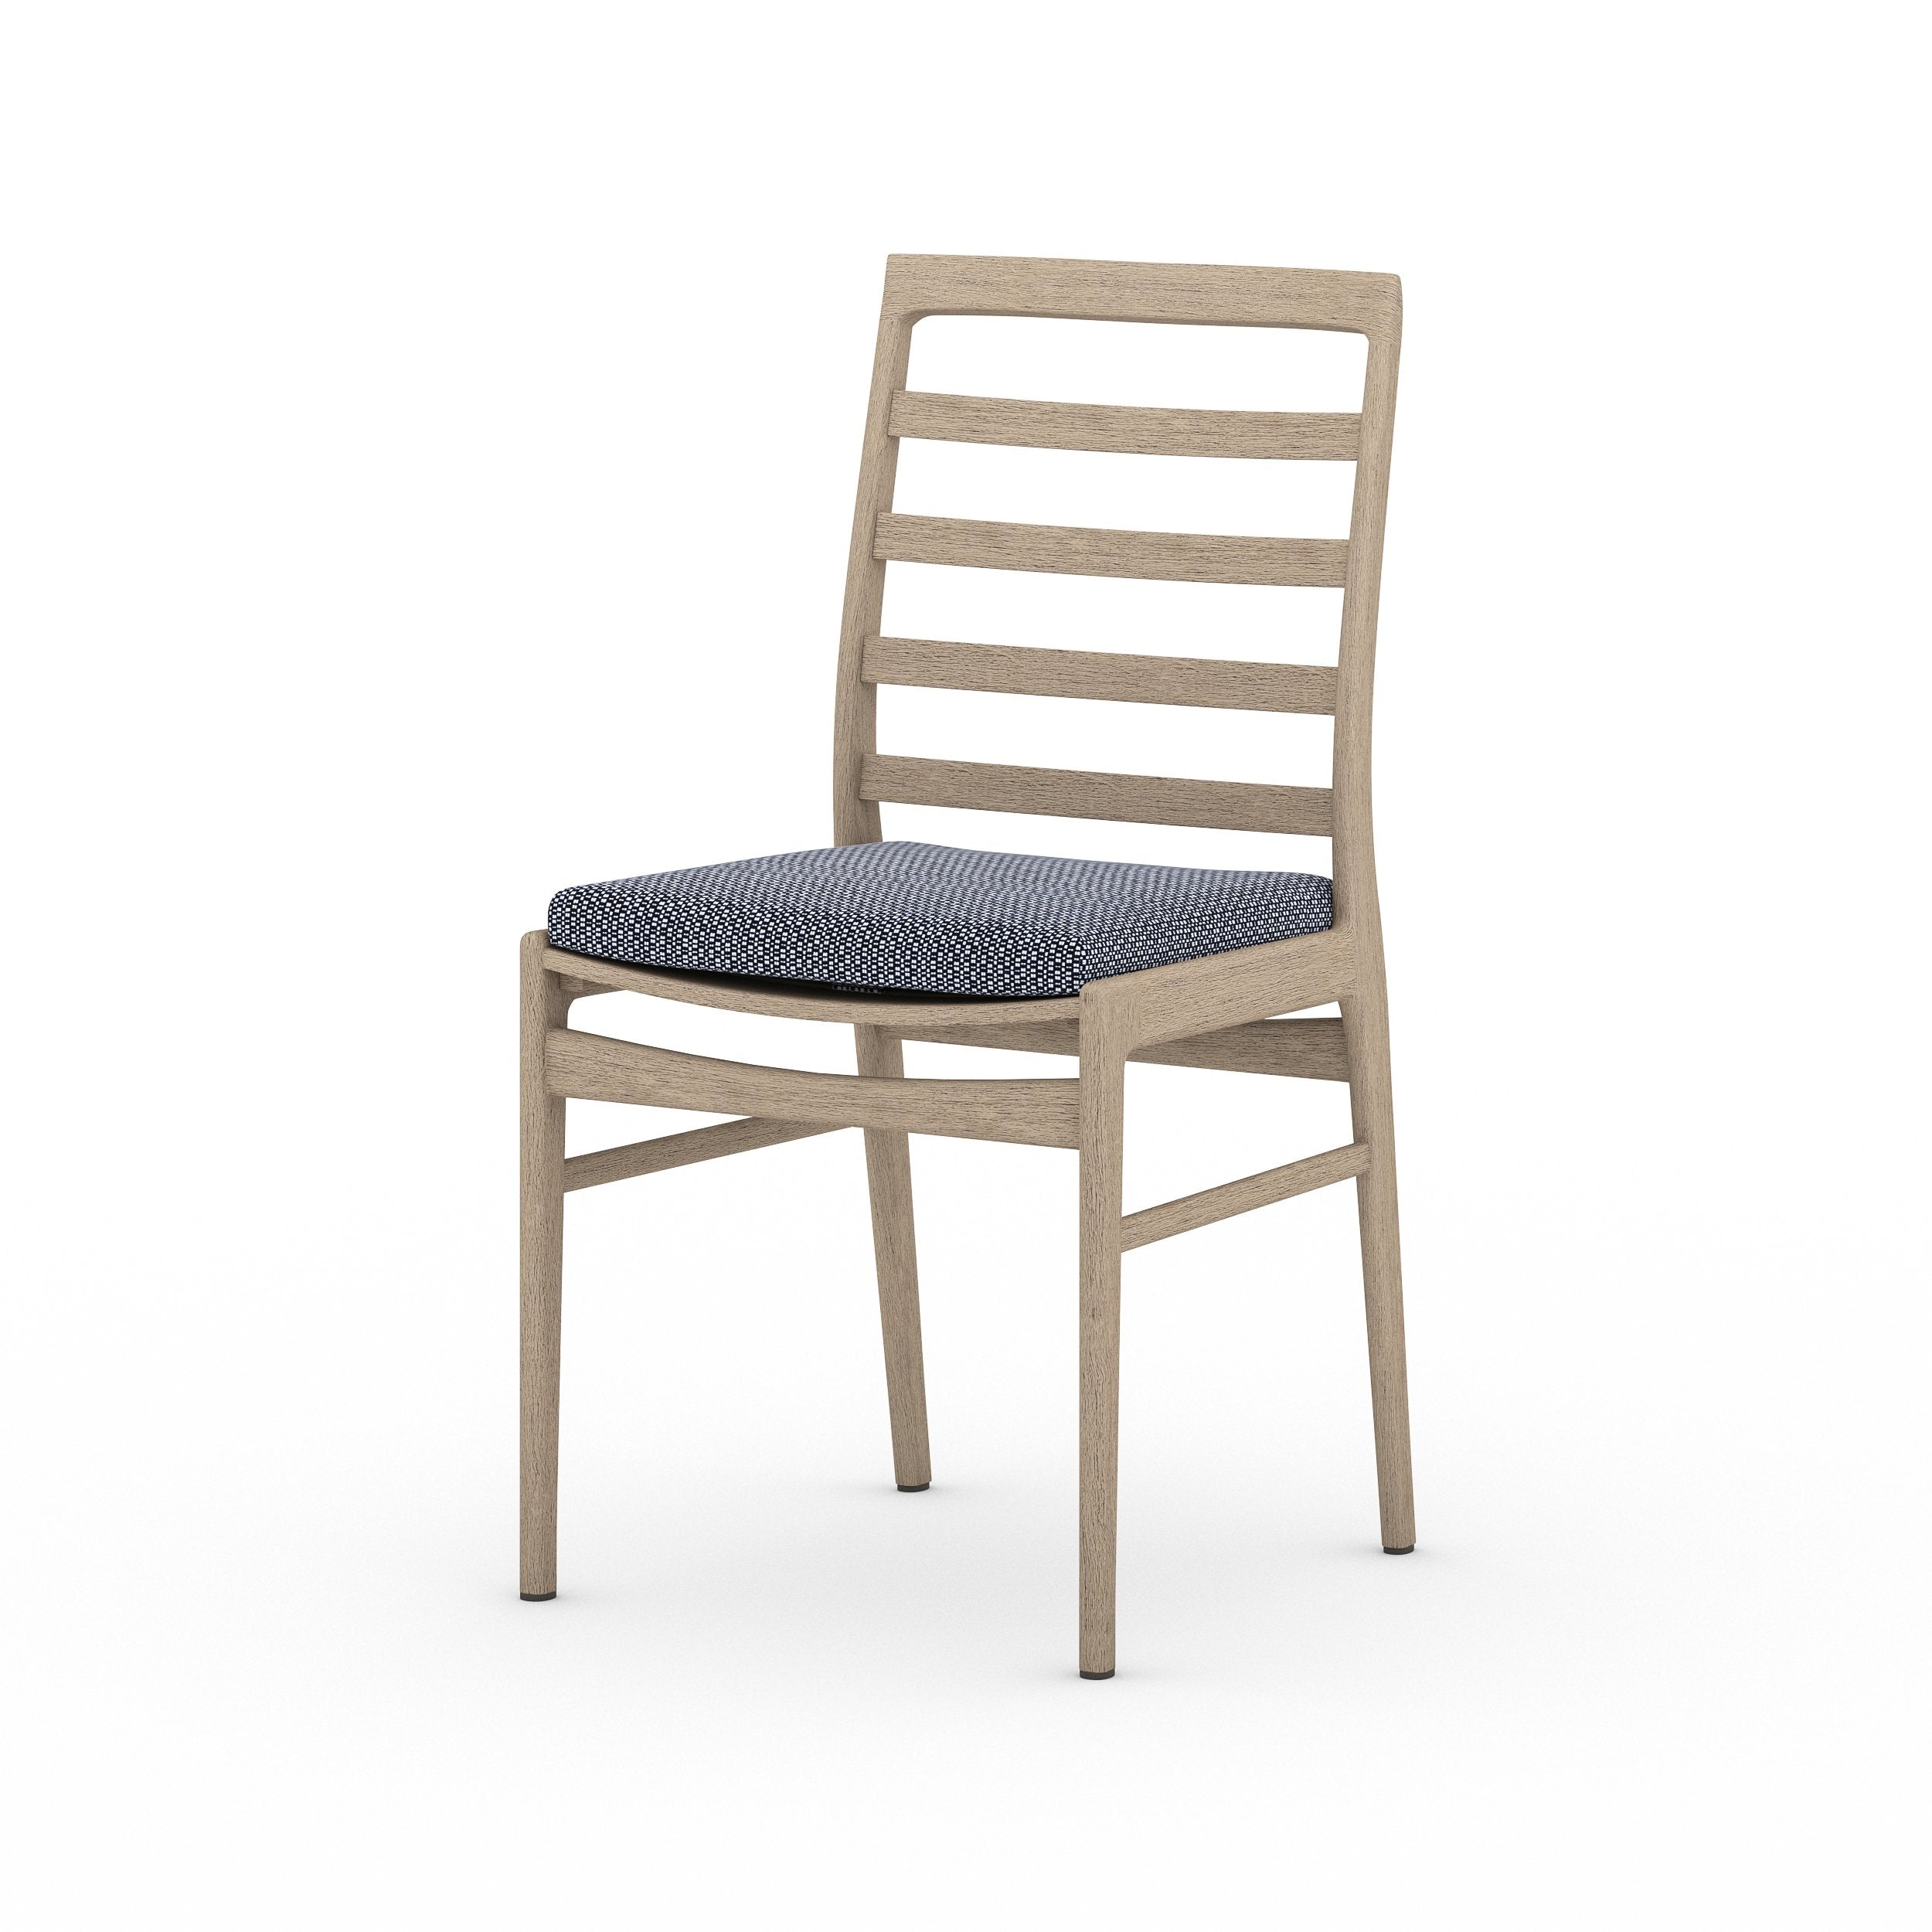 Outdoor | Chair | Dine